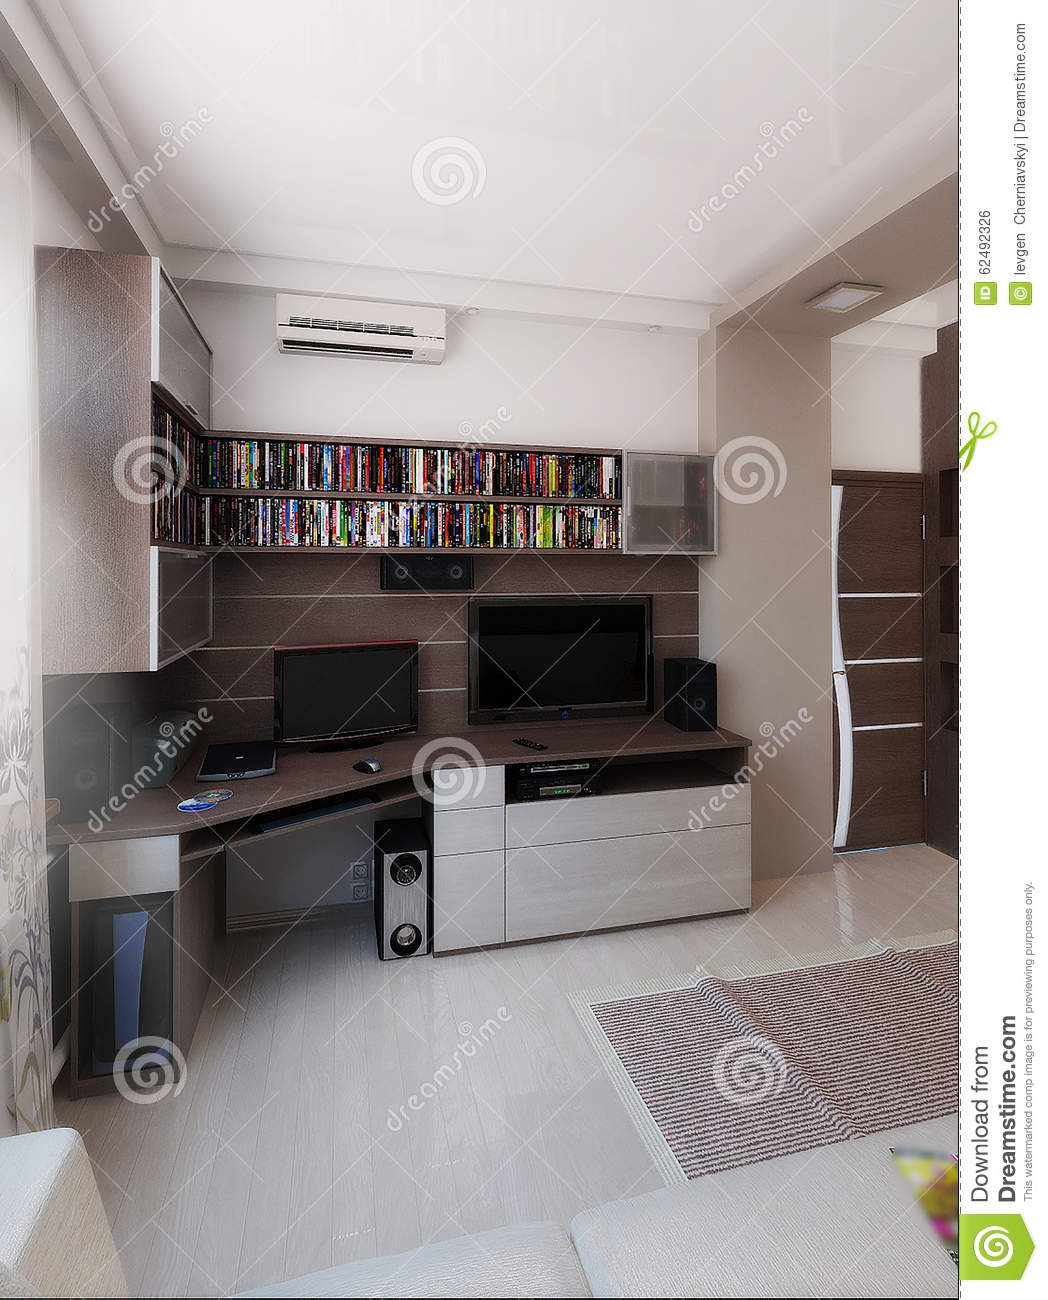 Young Man Bedroom, Interior Design, Render 3D Stock Illustration ...